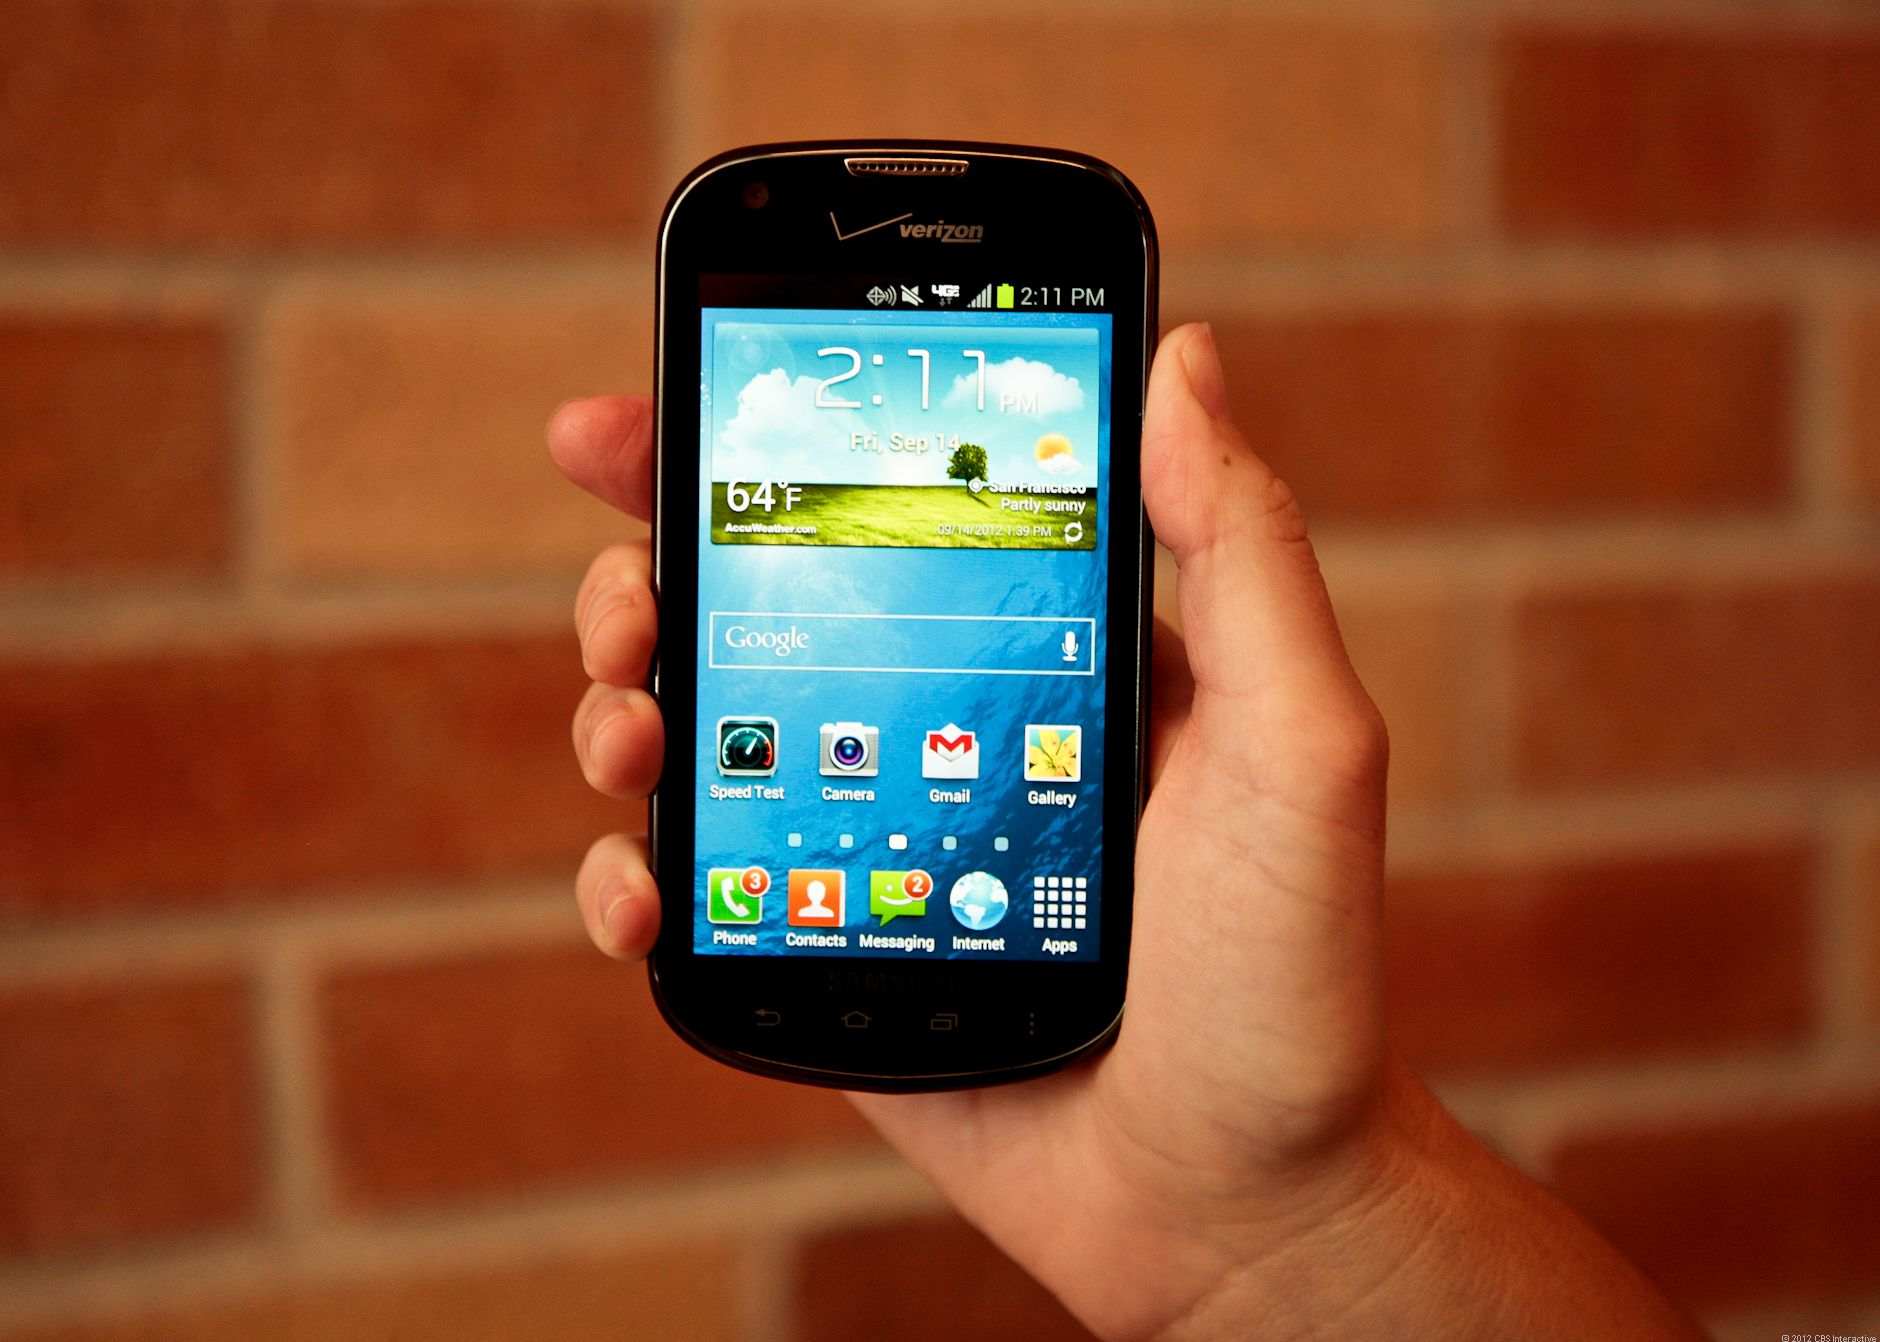 Samsung Galaxy Stellar (Verizon Wireless)